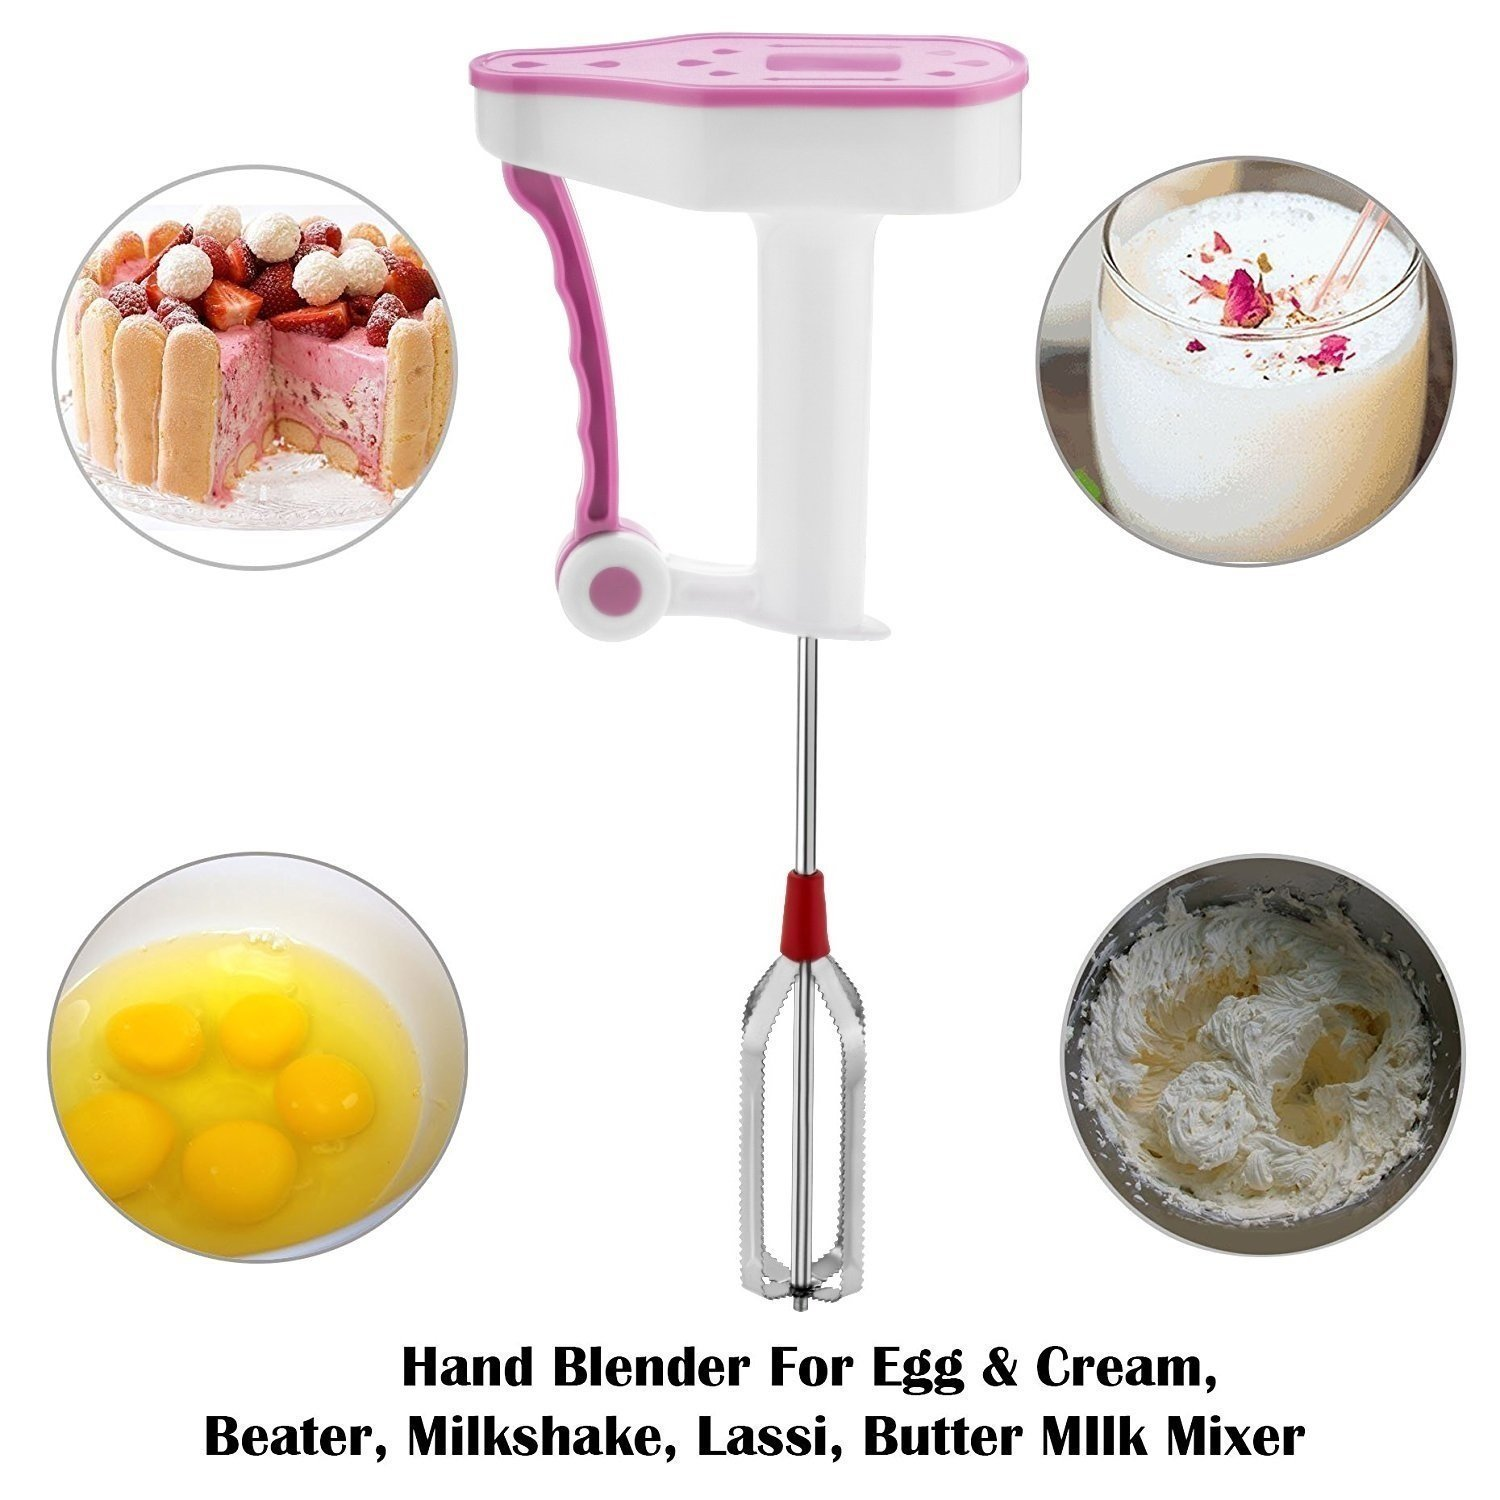 Power Free Hand Blender | Mixer | Milk Frother | Butter Milk Lassi Maker | Hand Free Blender Mixer | Egg Beater | Lassi Butter | Coffee Milk Egg Beater Mixer Shaker by URBANE SHOPPE (Image #5)